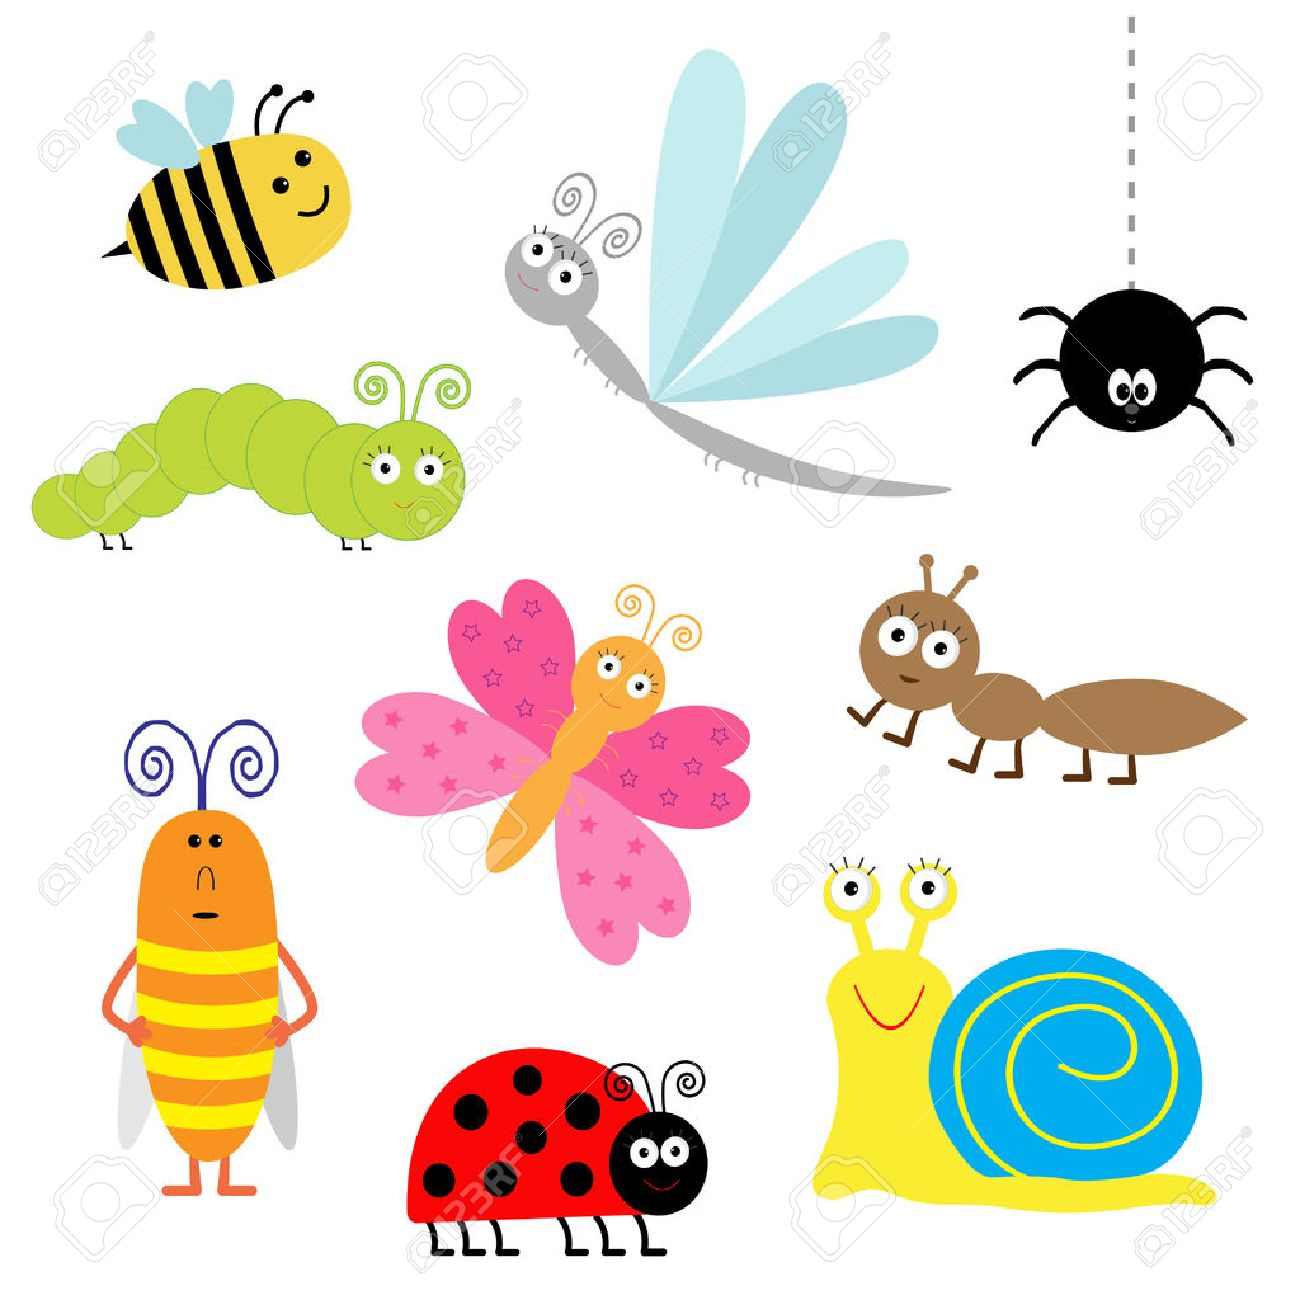 Cute Cartoon Insect Set Ladybug Dragonfly Butterfly Caterpillar Royalty Free Cliparts Vectors And Stock Illustration Image 29617155